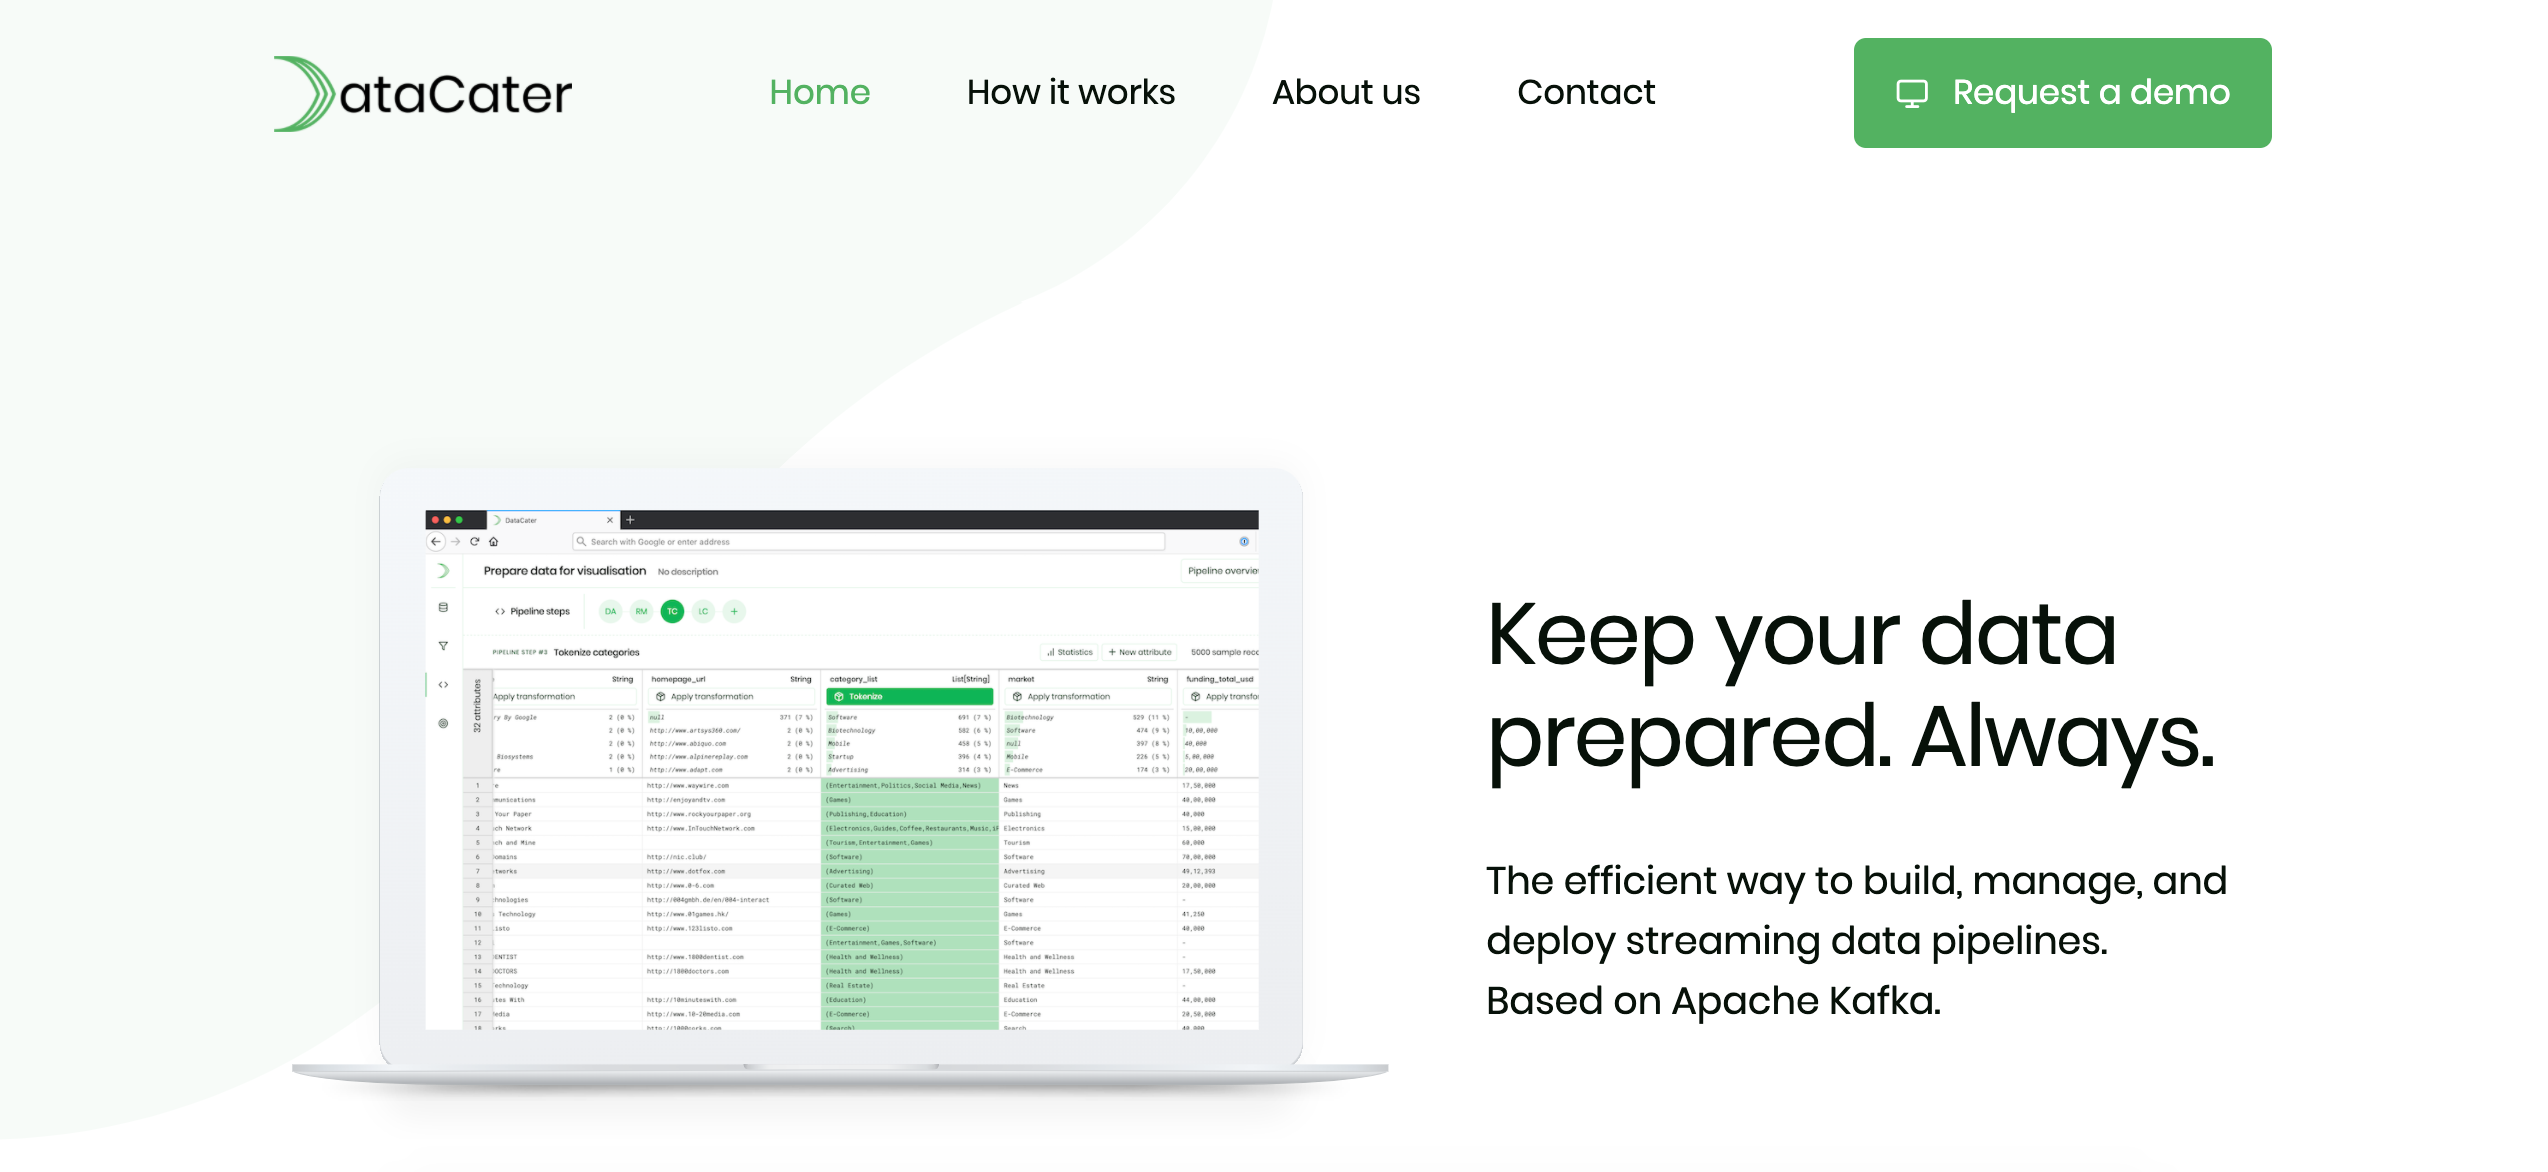 DataCater: Keep your data prepared. Always.